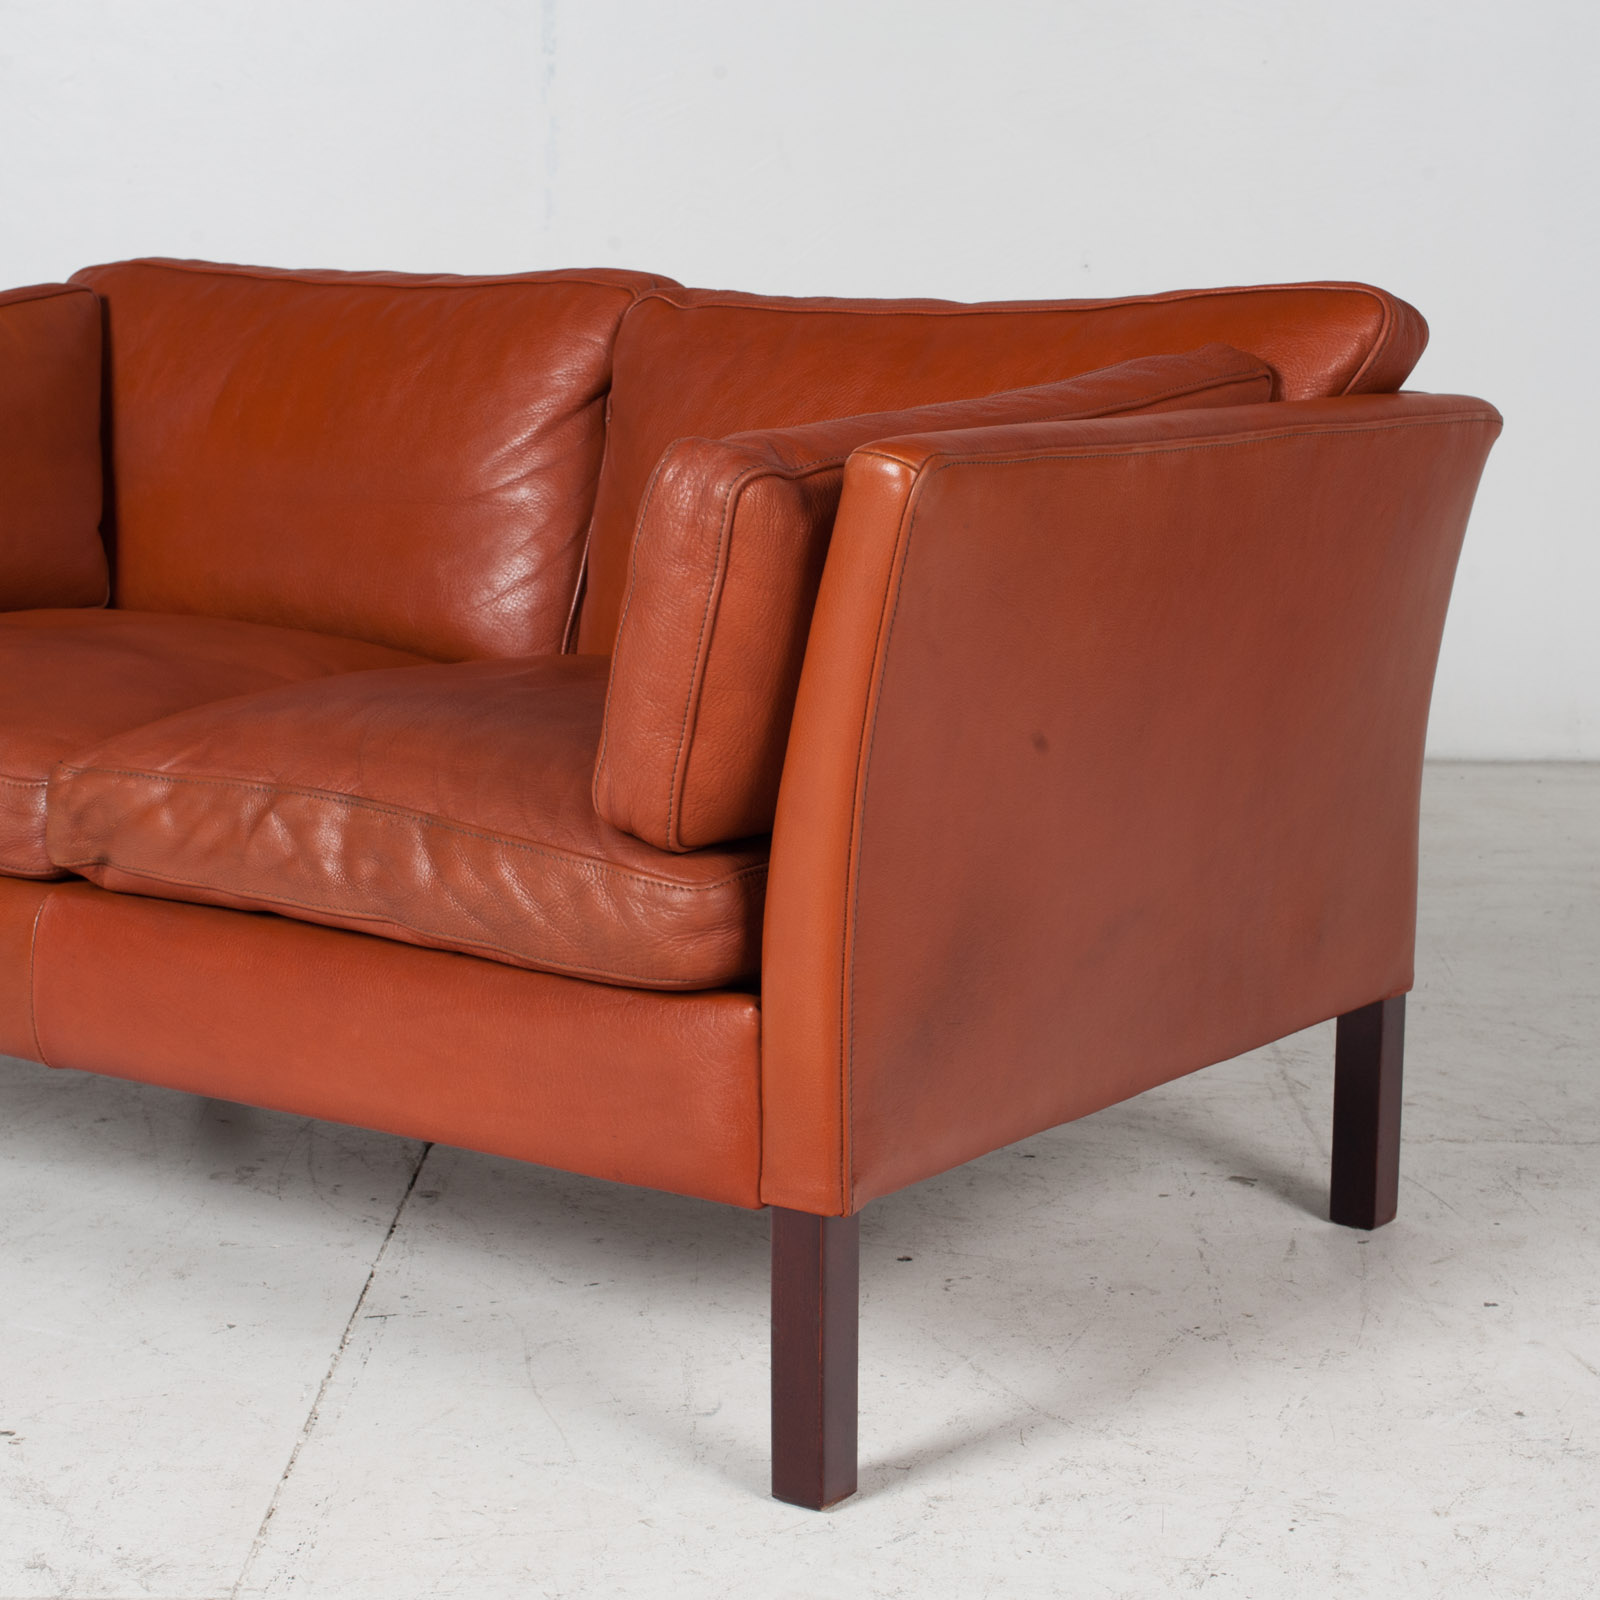 2 Seat Sofa By Stouby In Tan Leather, 1960s, Denmark 6